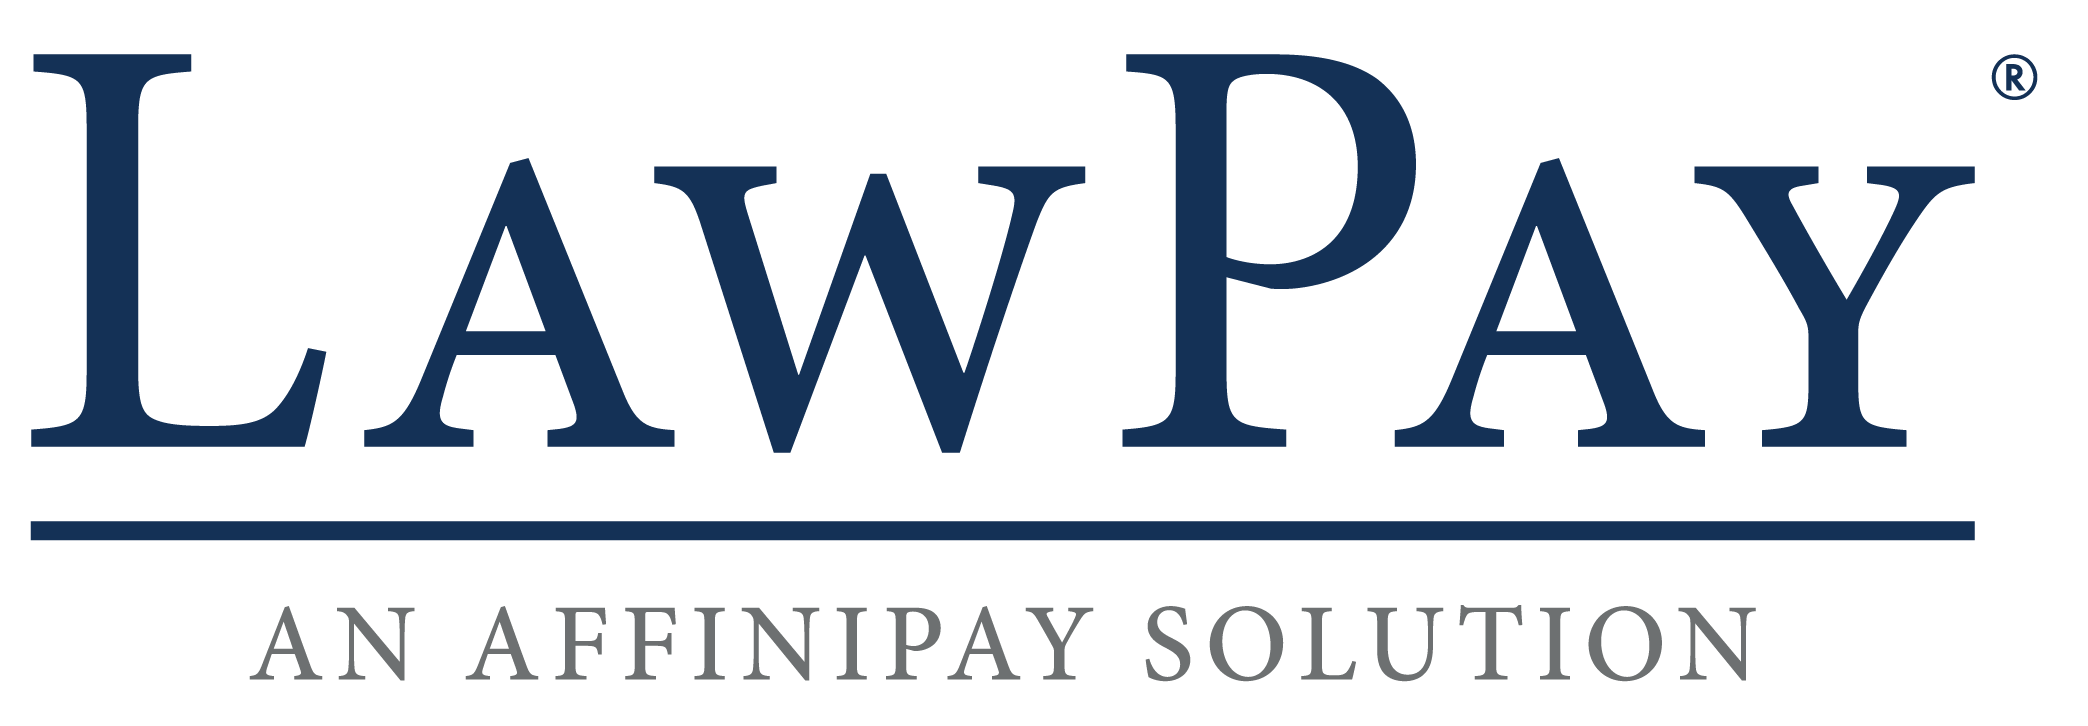 Law Pay Affinipay Solutions